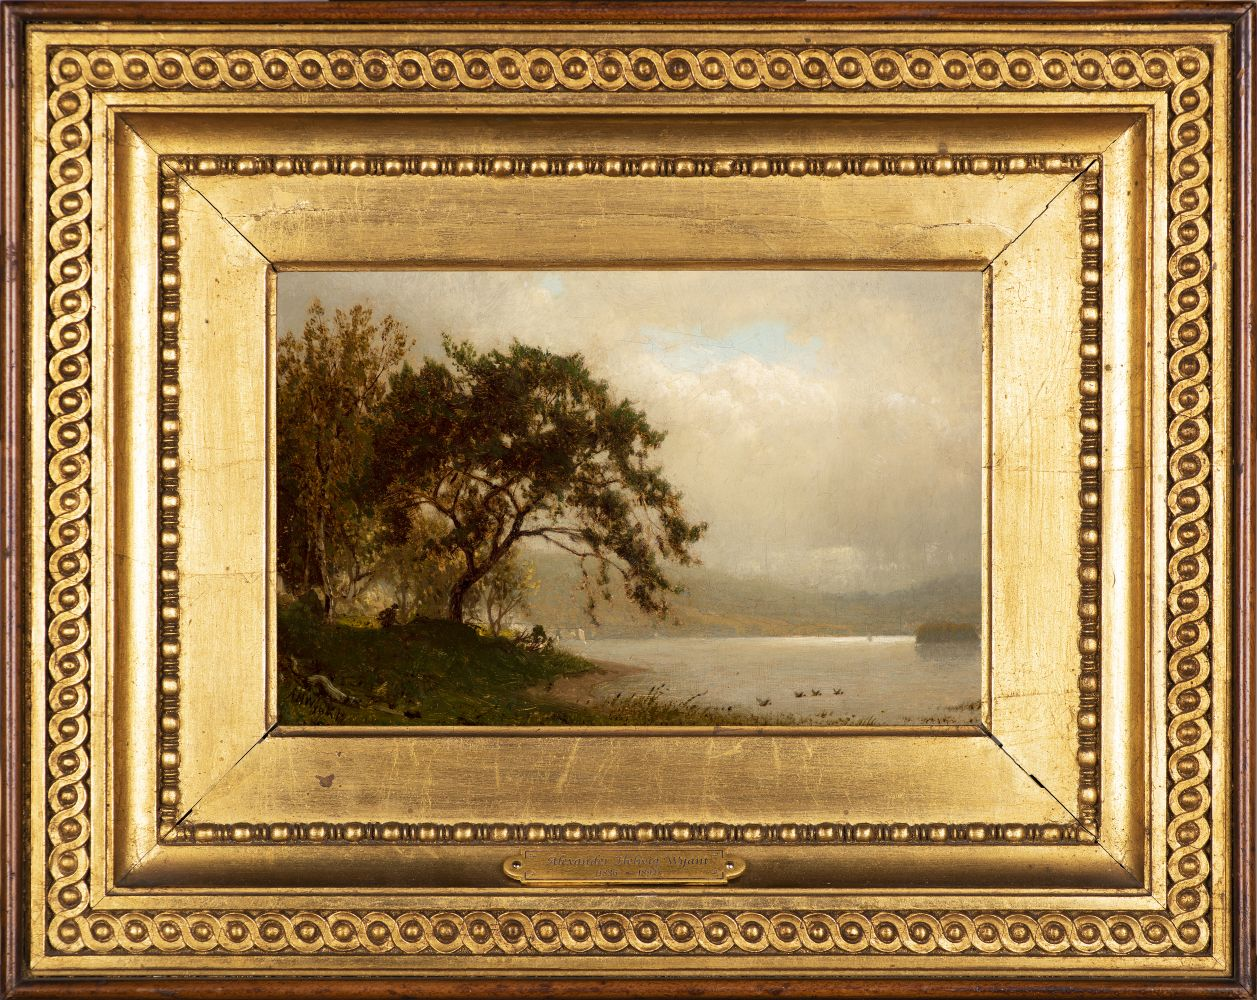 Alexander Helwig Wyant (1836–1892), The Duck Hunter, c. 1872–75, oil on canvas, 6 1/8 x 9 1/8 in., signed lower left: AH Wyant (framed)